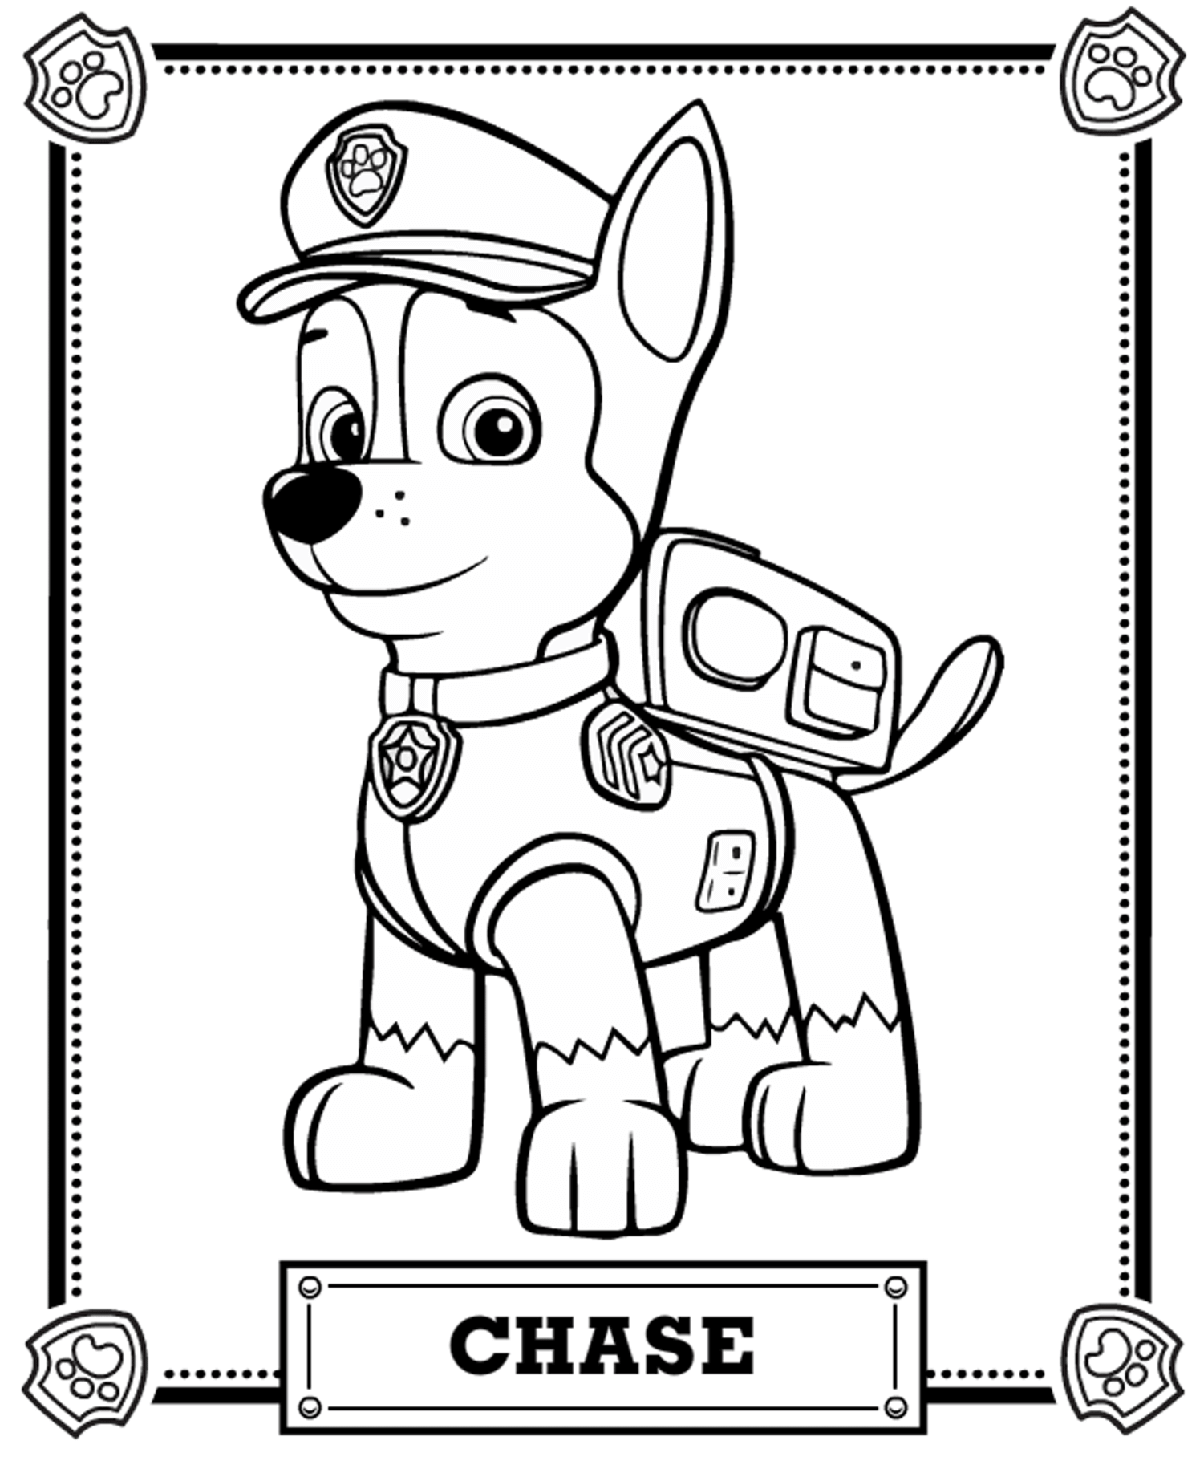 Chase Portrait Free Coloring Page • Animals, Kids, Paw Patrol